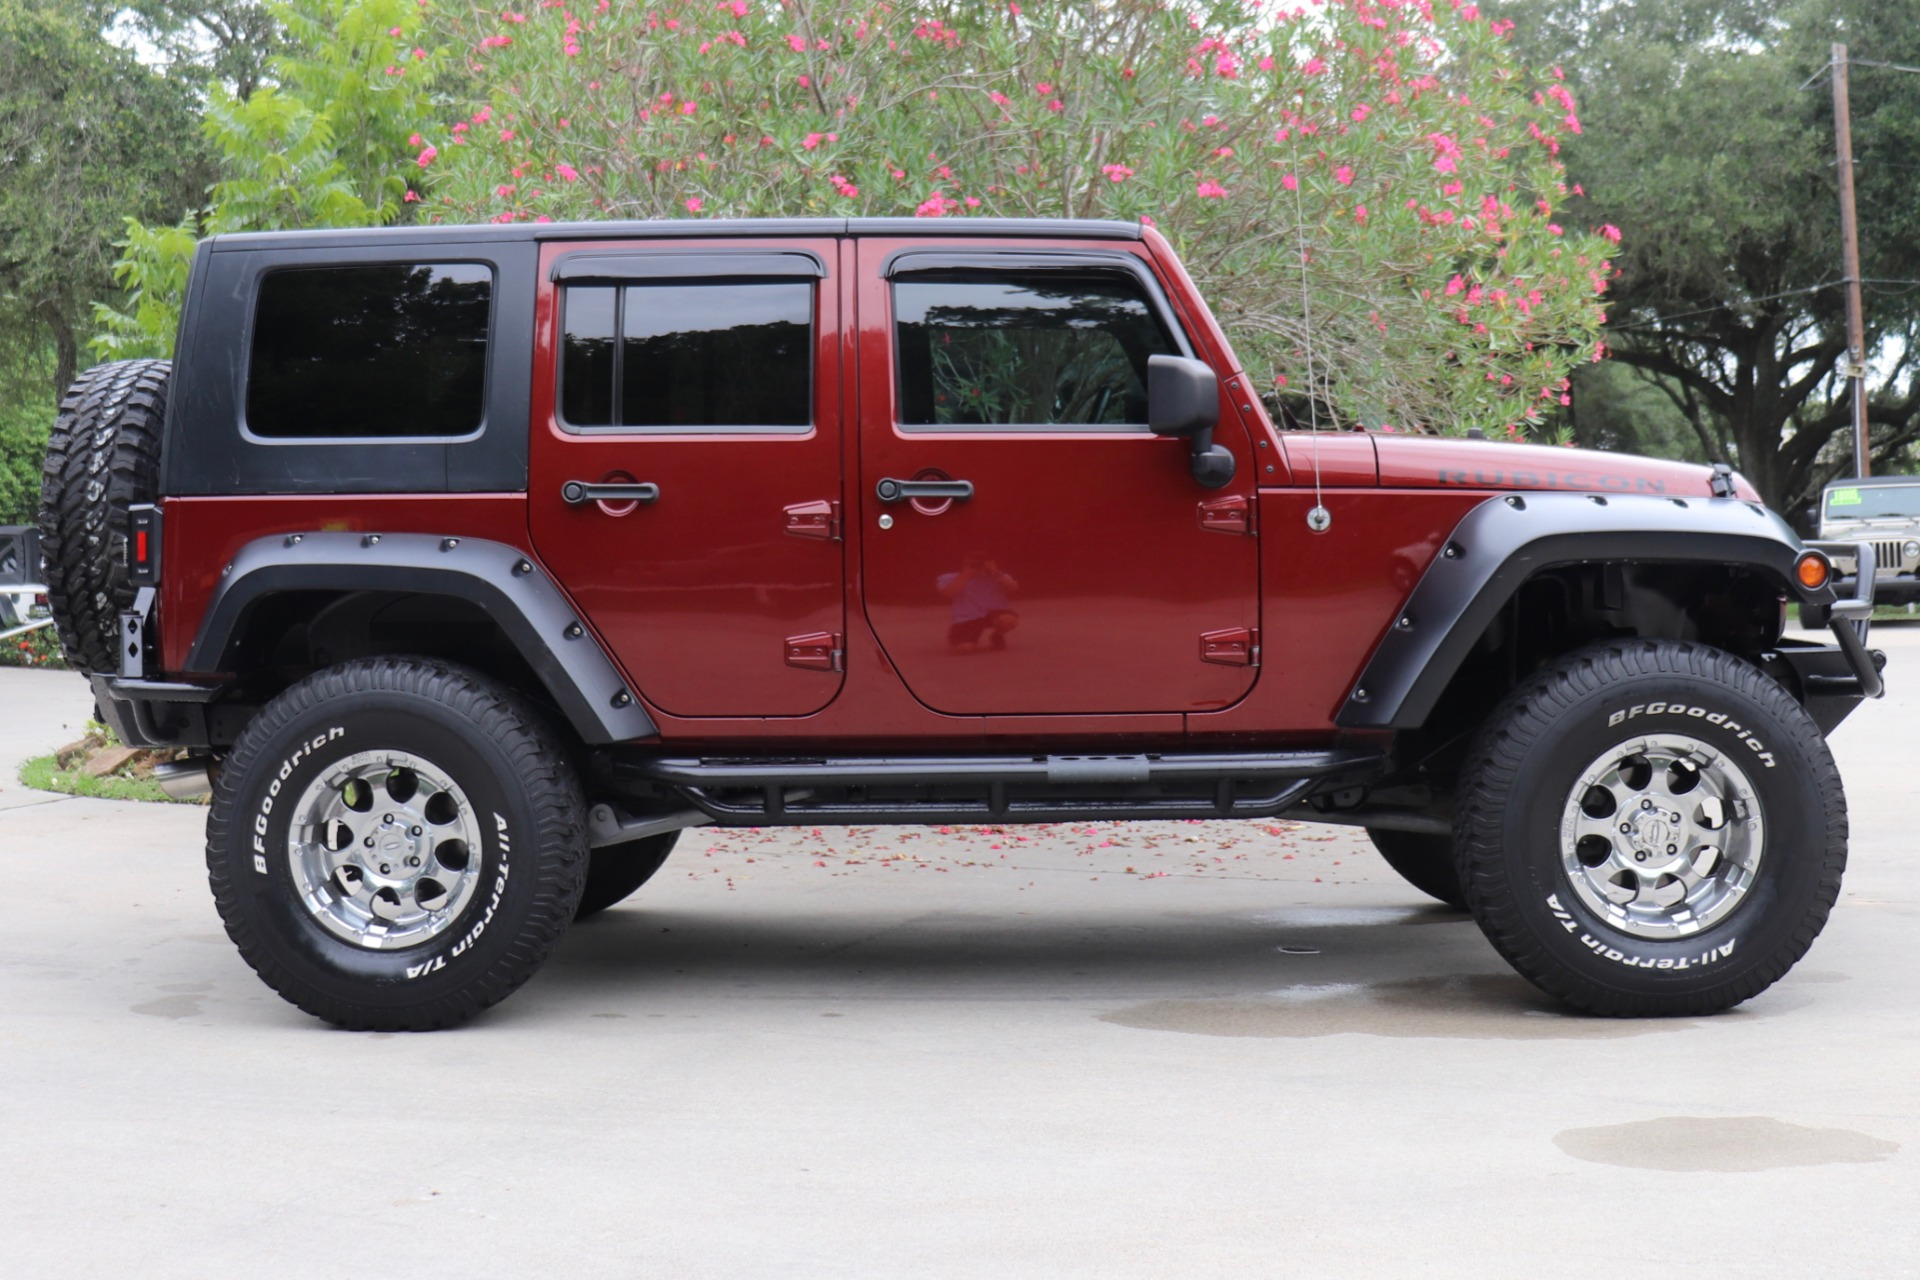 Used-2010-Jeep-Rubicon-Unlimited-Rubicon